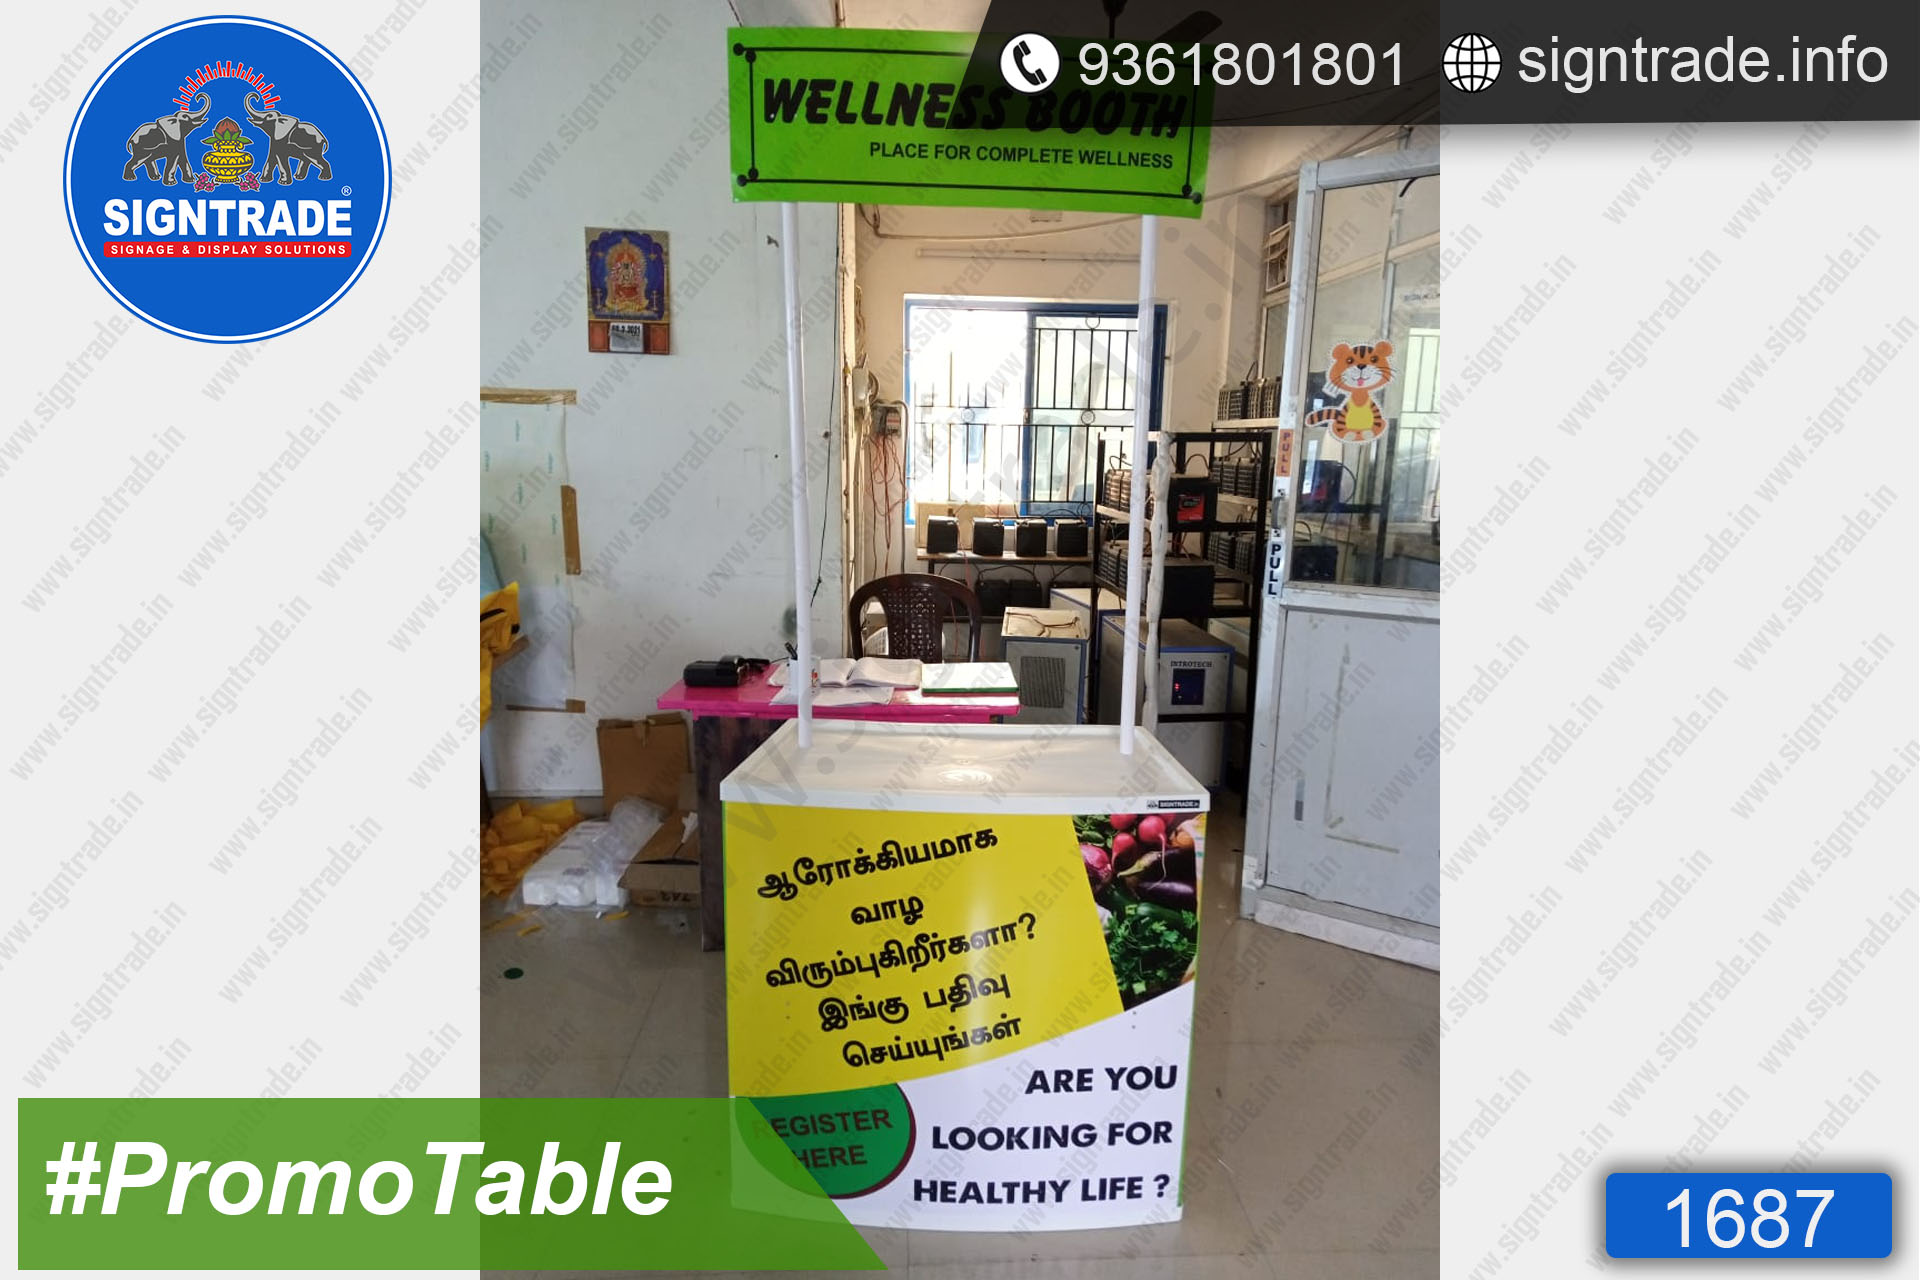 Wellness Booth - SIGNTRADE - Promotional Table Manufactures in Chennai